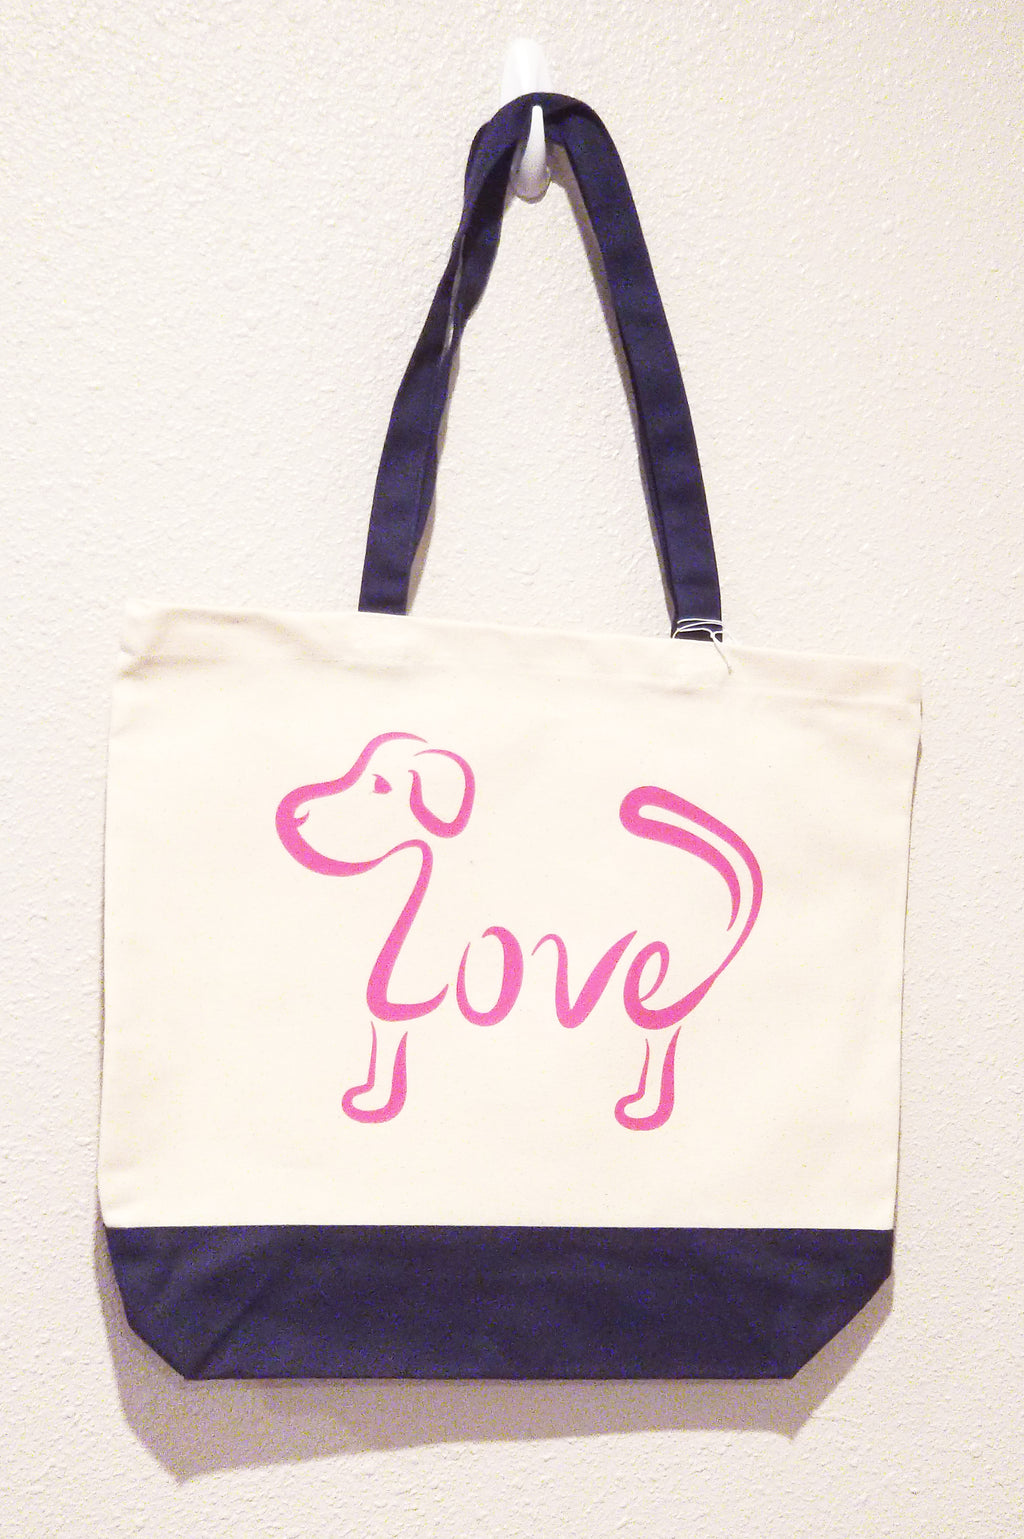 Love Dog - Pink Tote Bag with Navy Handles